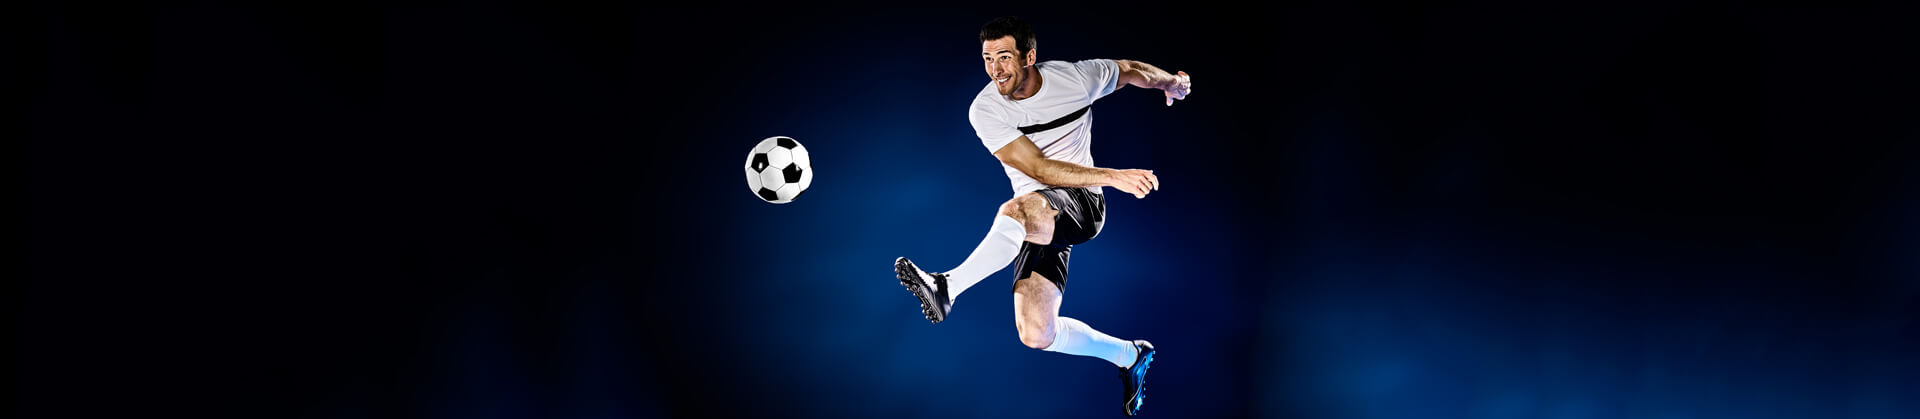 Man playing soccer isolated in dark background